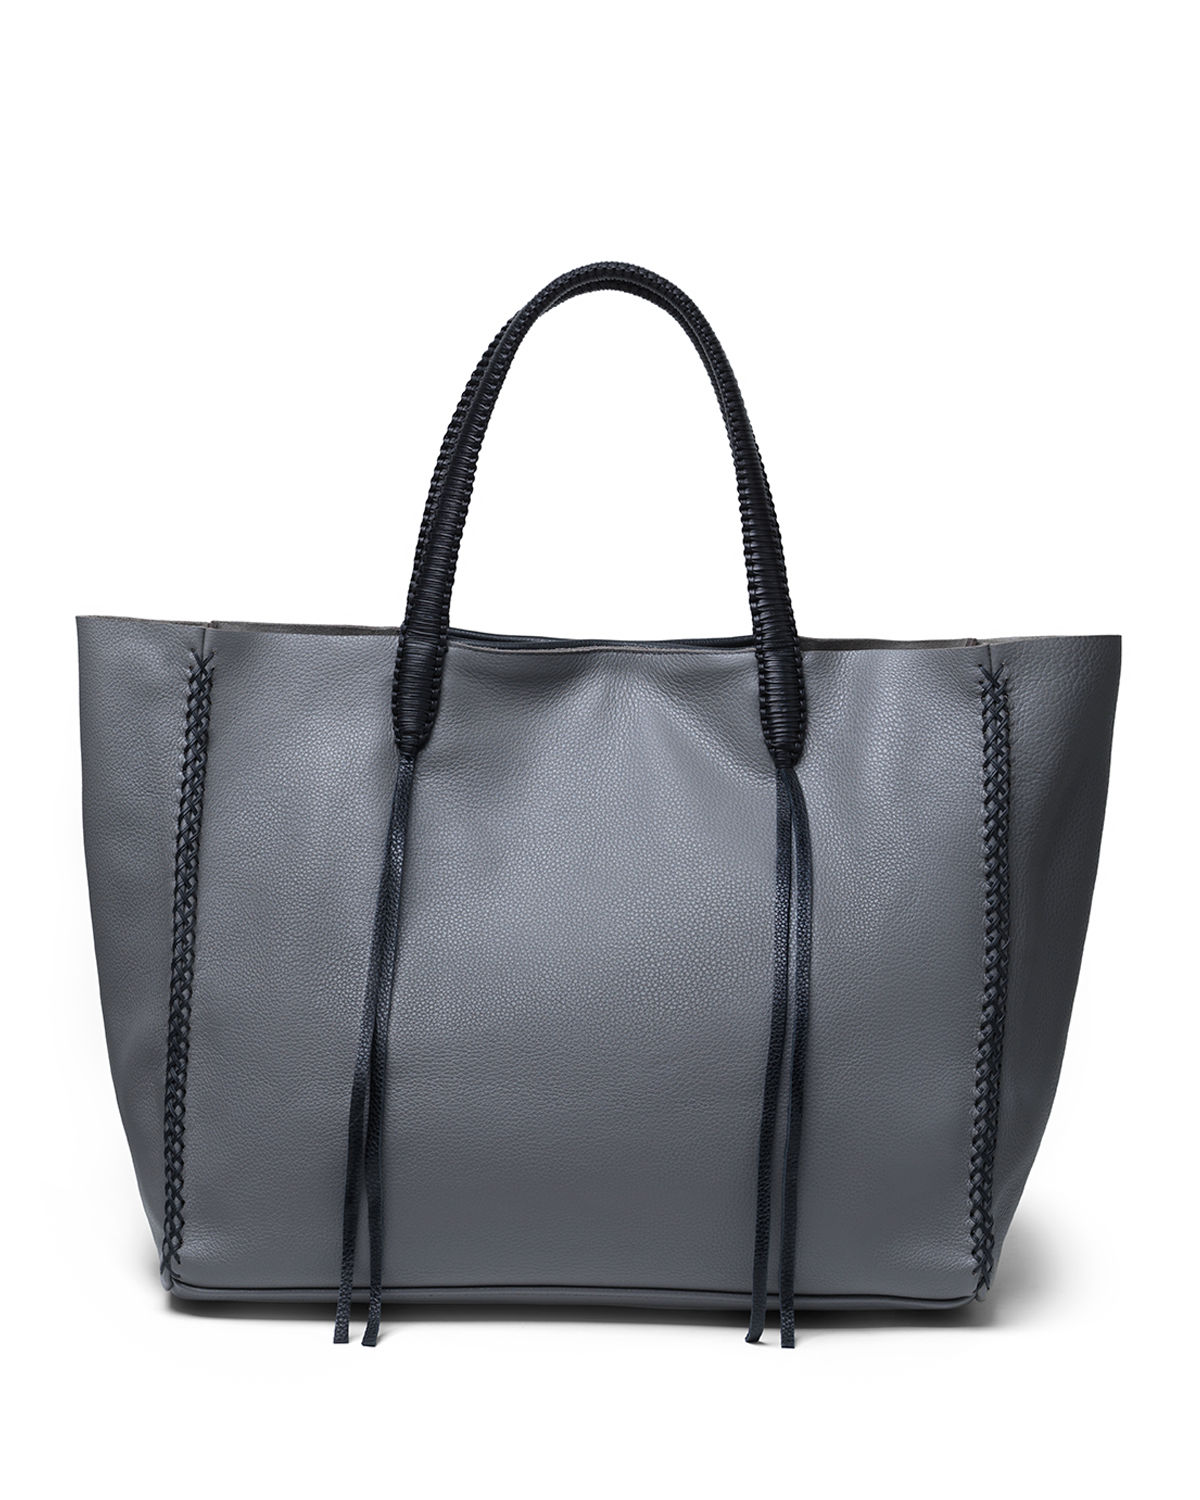 Iconic Stitched Tote Bag